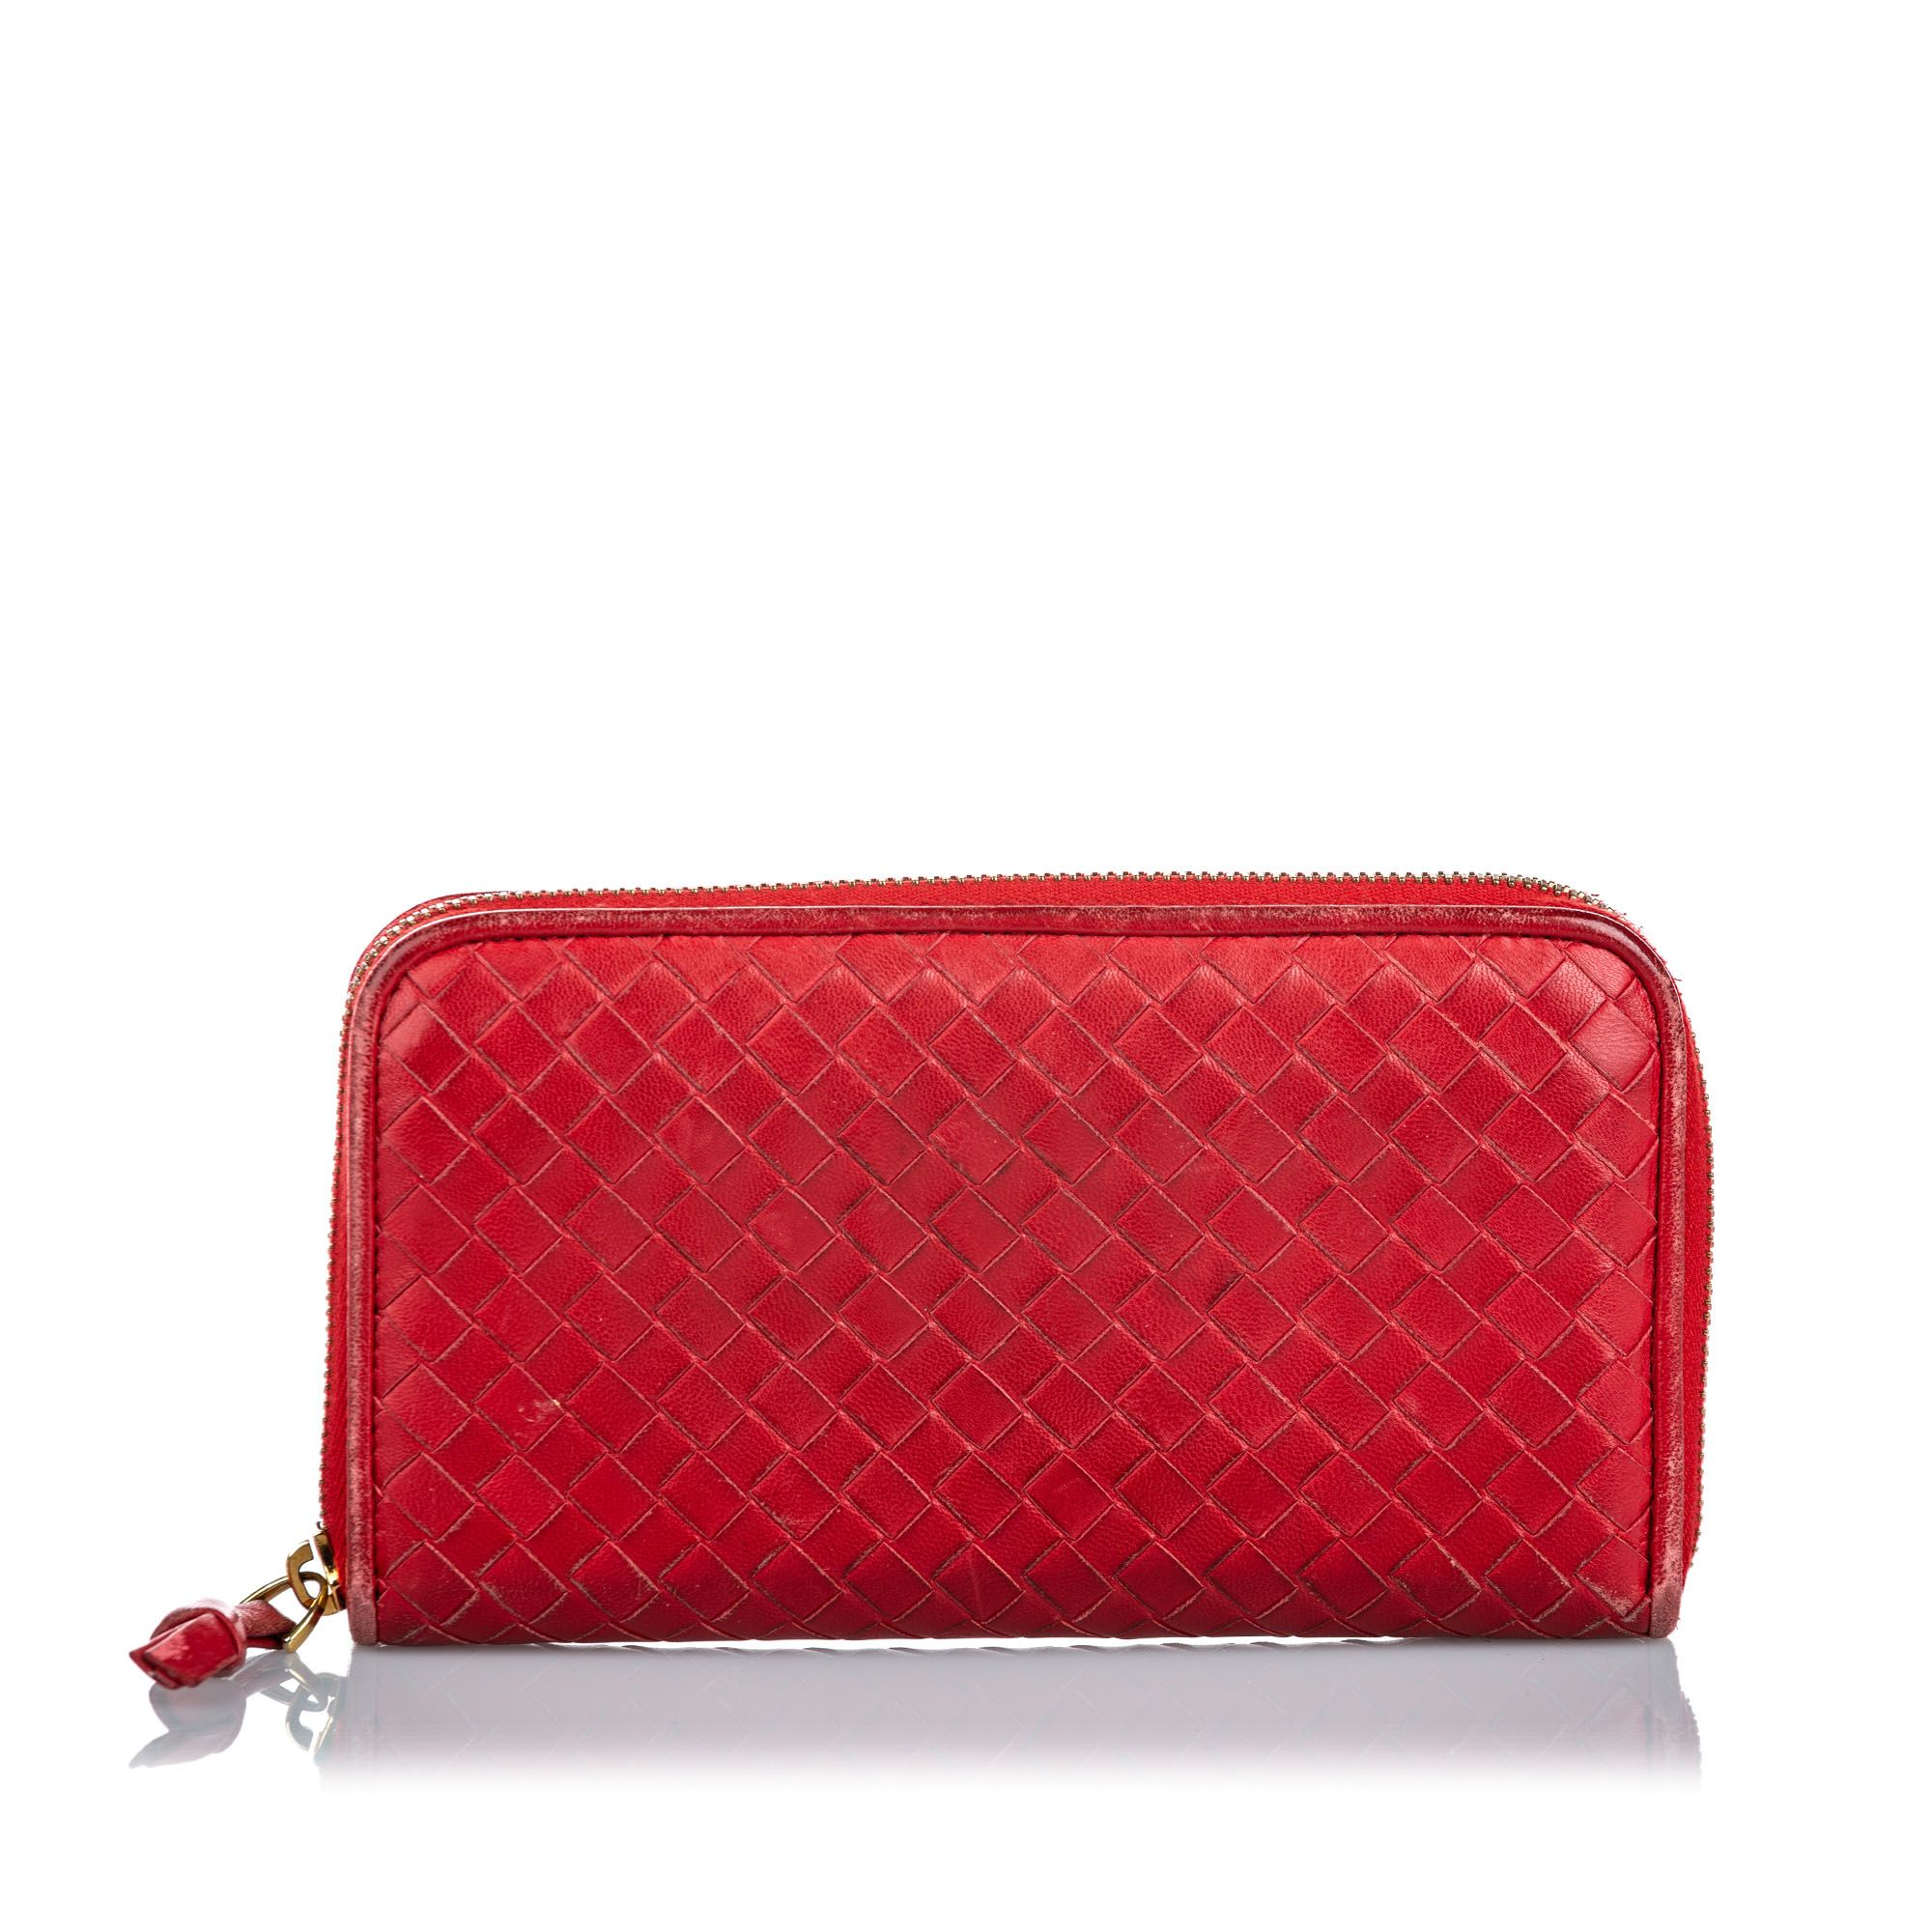 Vintage Bottega Veneta Intrecciato Leather Zip Around Wallet Red